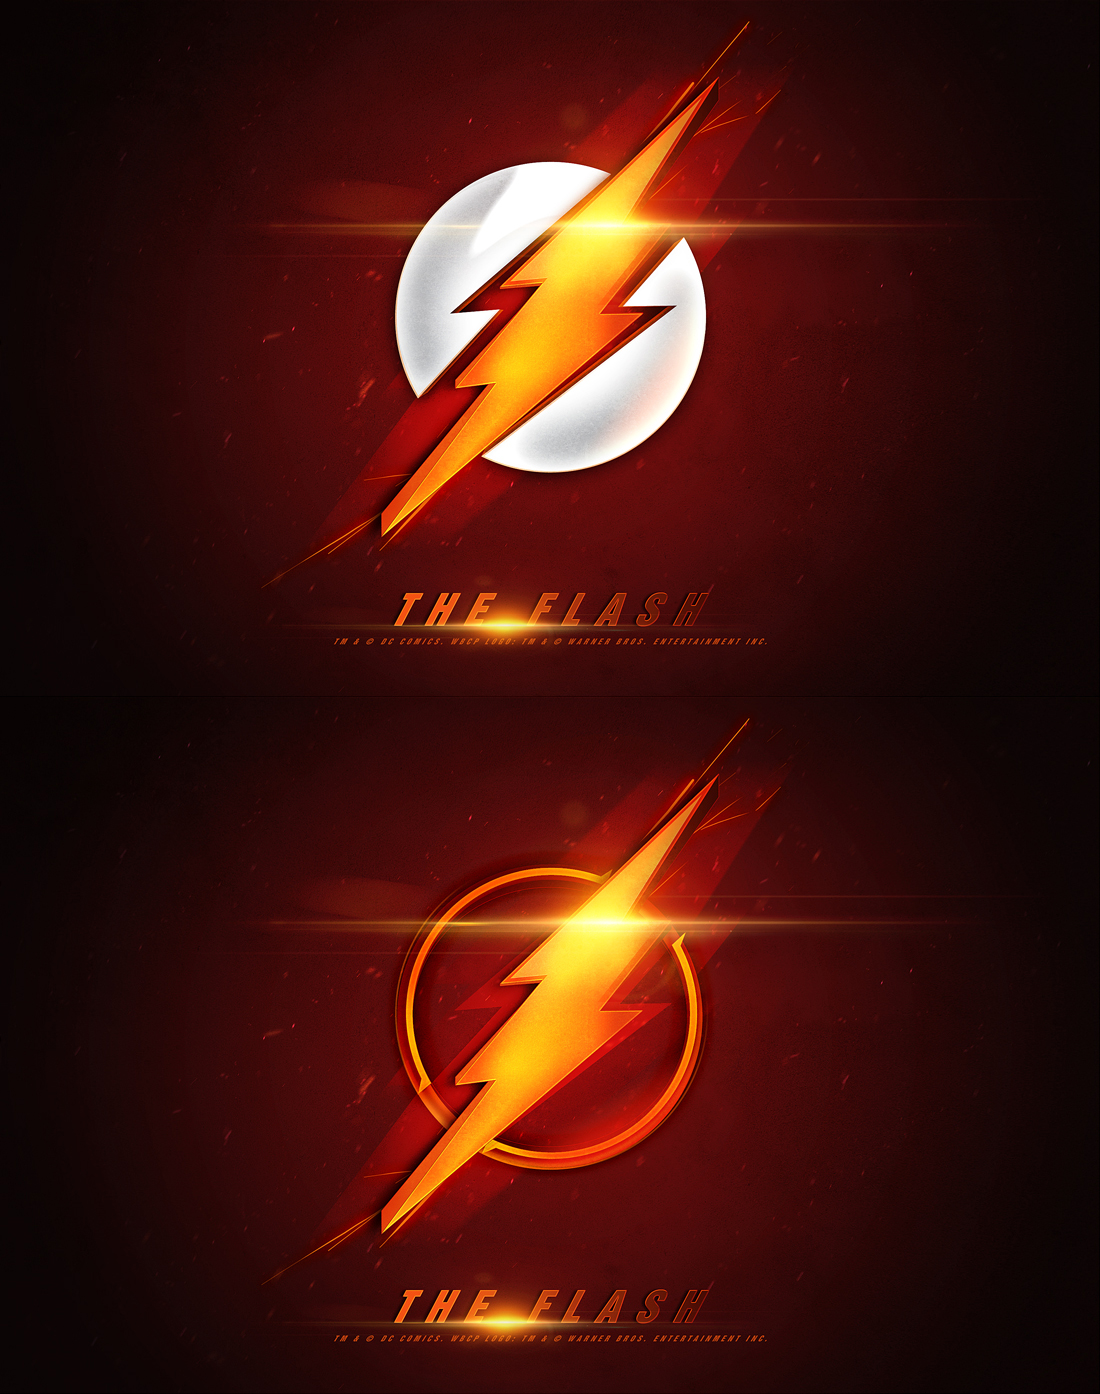 The Flash Logo   Movie Poster by oroster 1100x1394